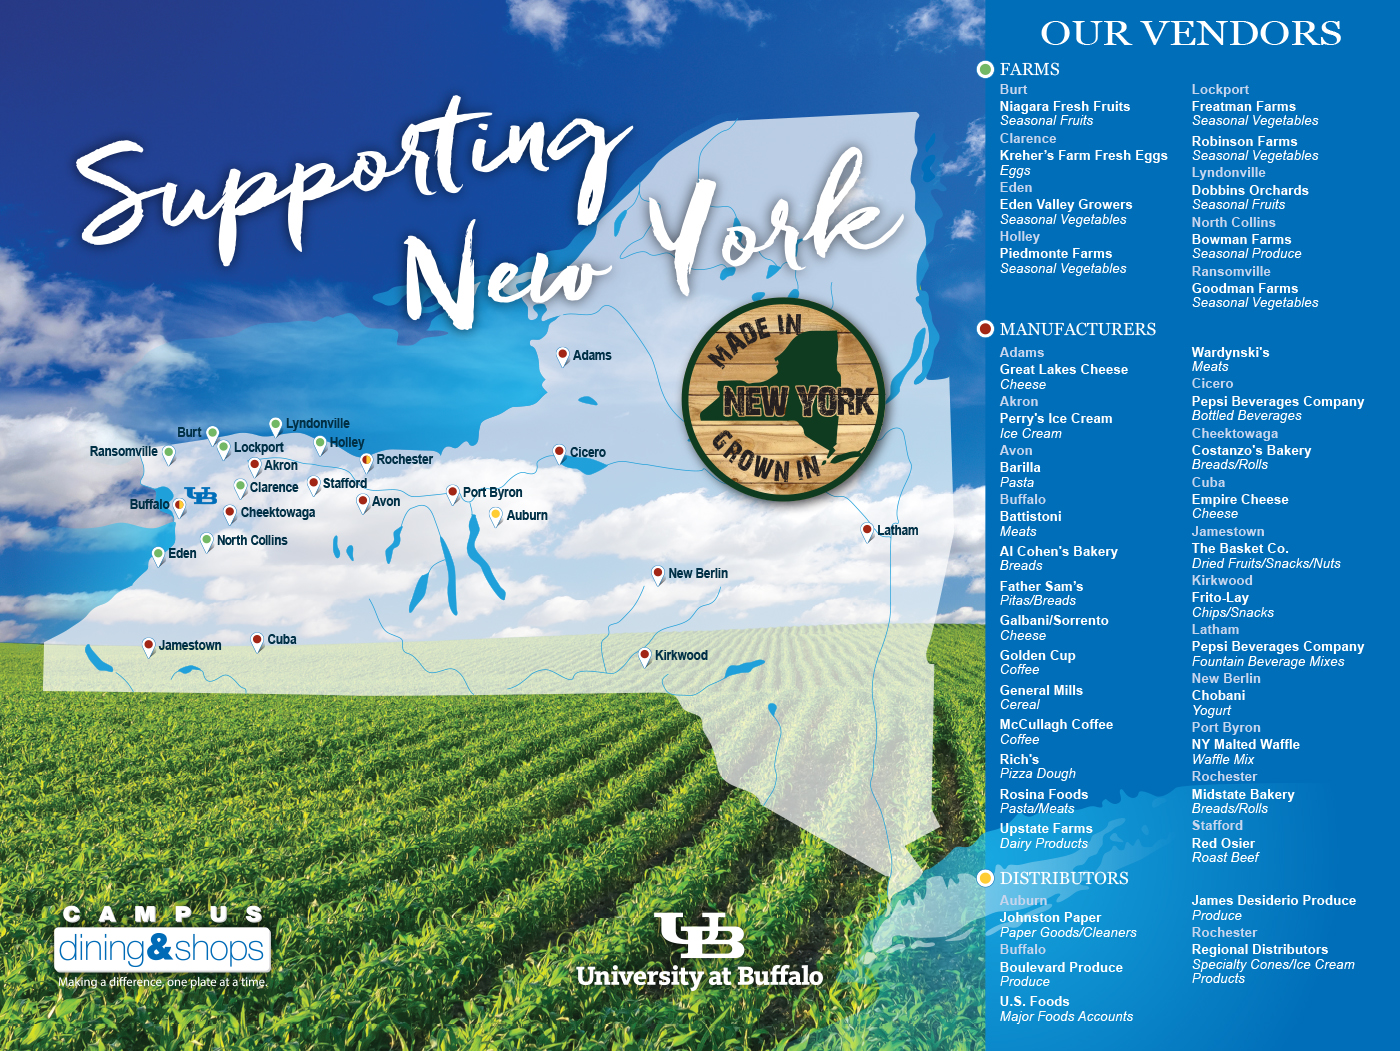 Supporting New York: List of Made in New York vendors